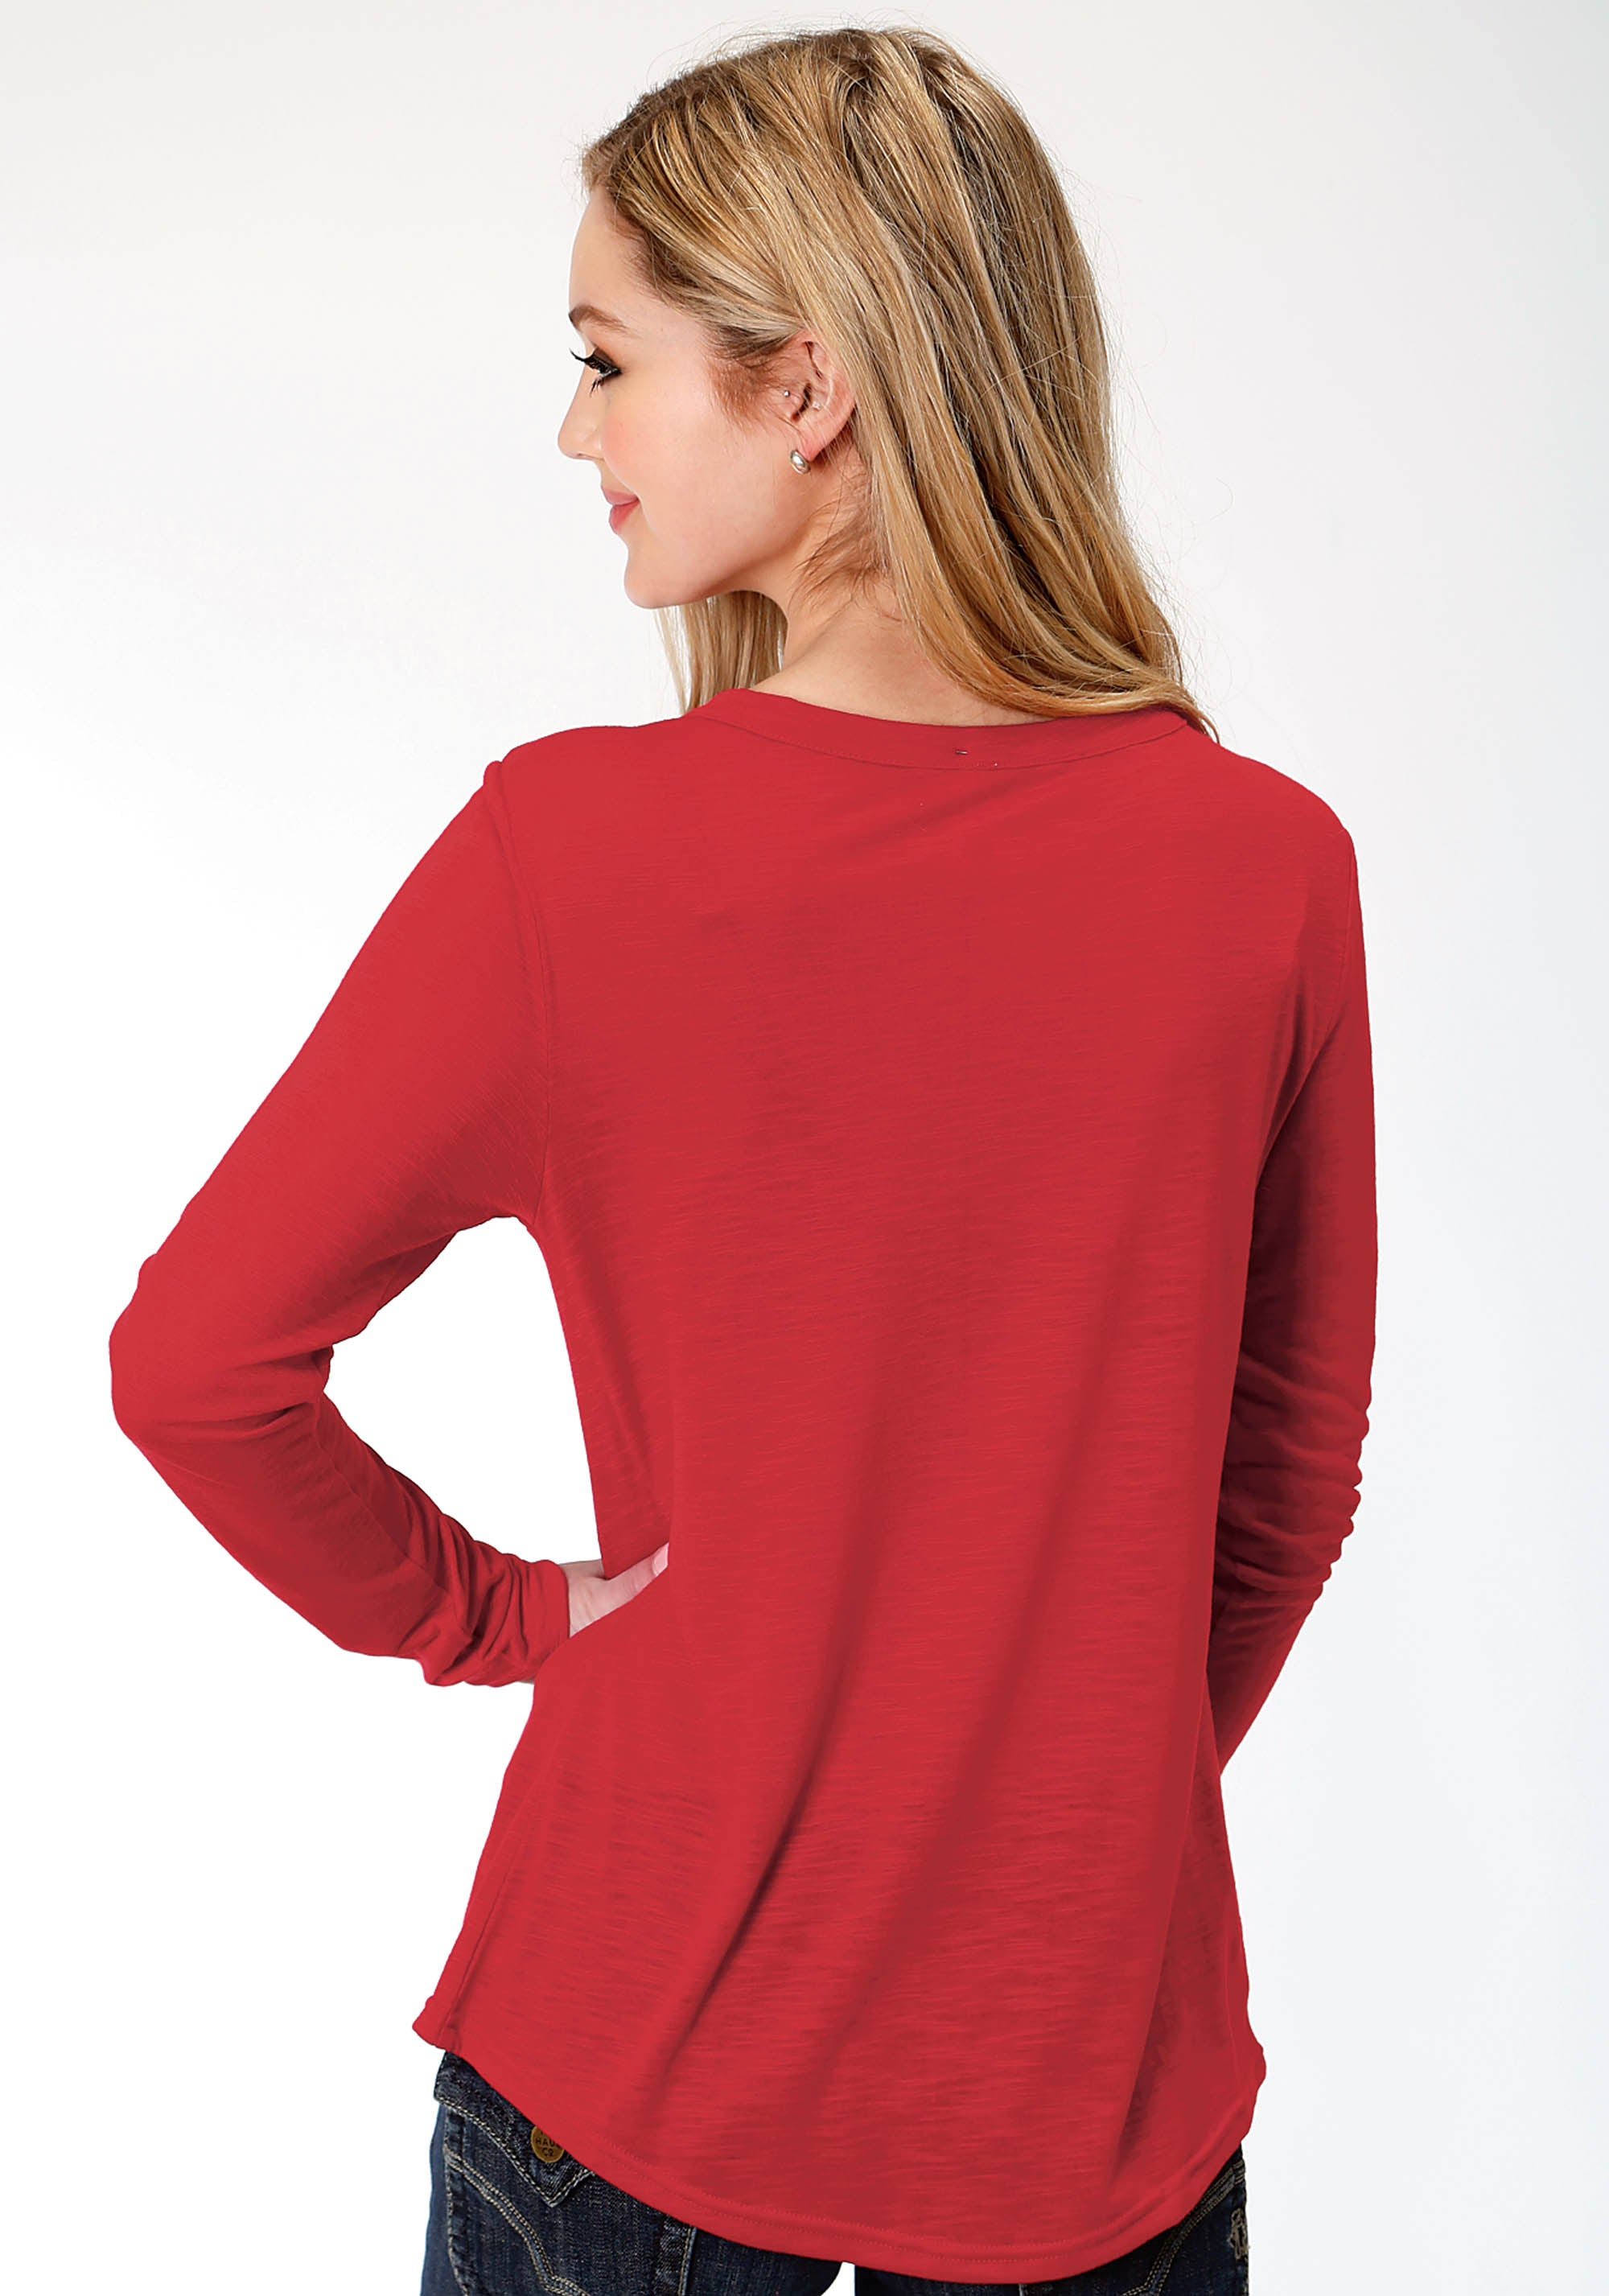 ROPER WOMENS RED 0489 P/R JERSEY LS CREW NECK TEE FIVE STAR COLLECTION- FALL I LONG SLEEVE